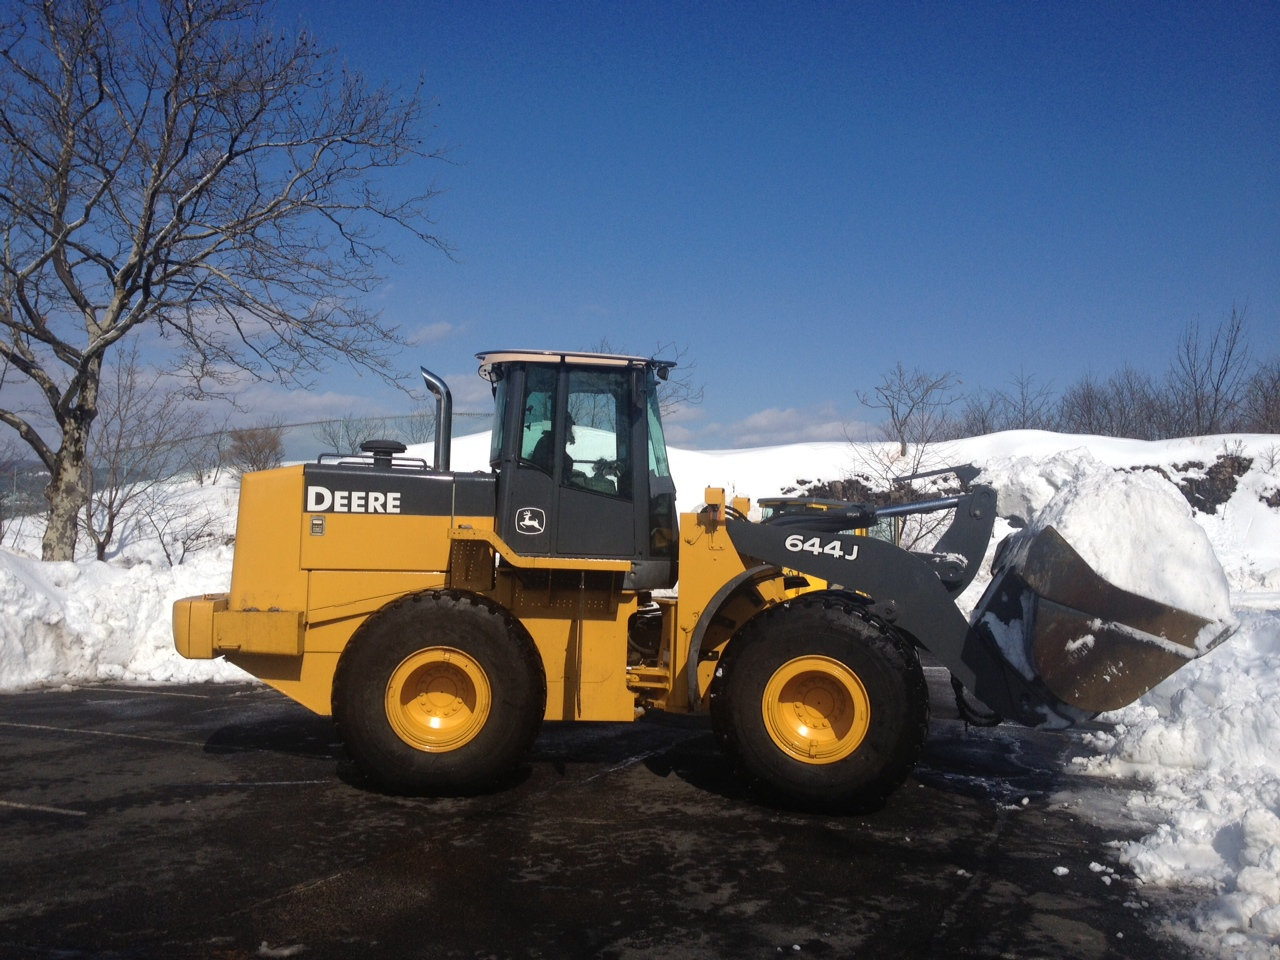 01393001444ndscaping company REDUCING THE RISK OF REFREEZING: NJ PROFESSIONAL SNOW REMOVAL CO.